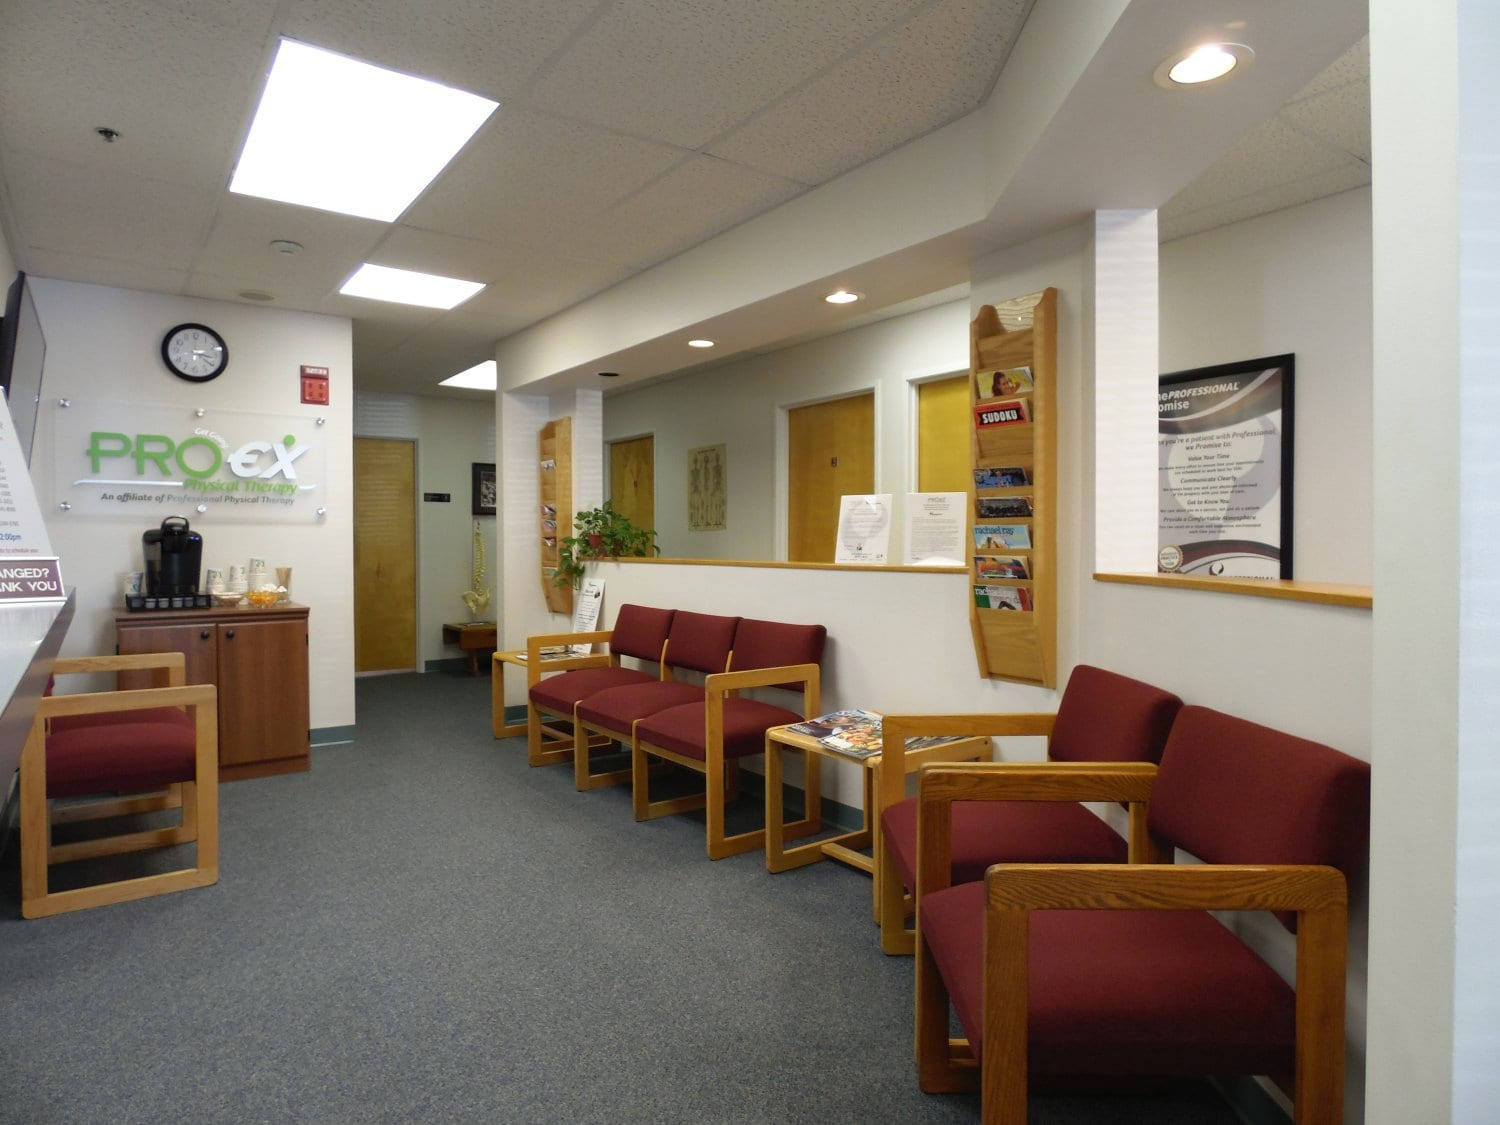 An image of the patient waiting area at our physical therapy clinic in Exeter, New Hampshire.